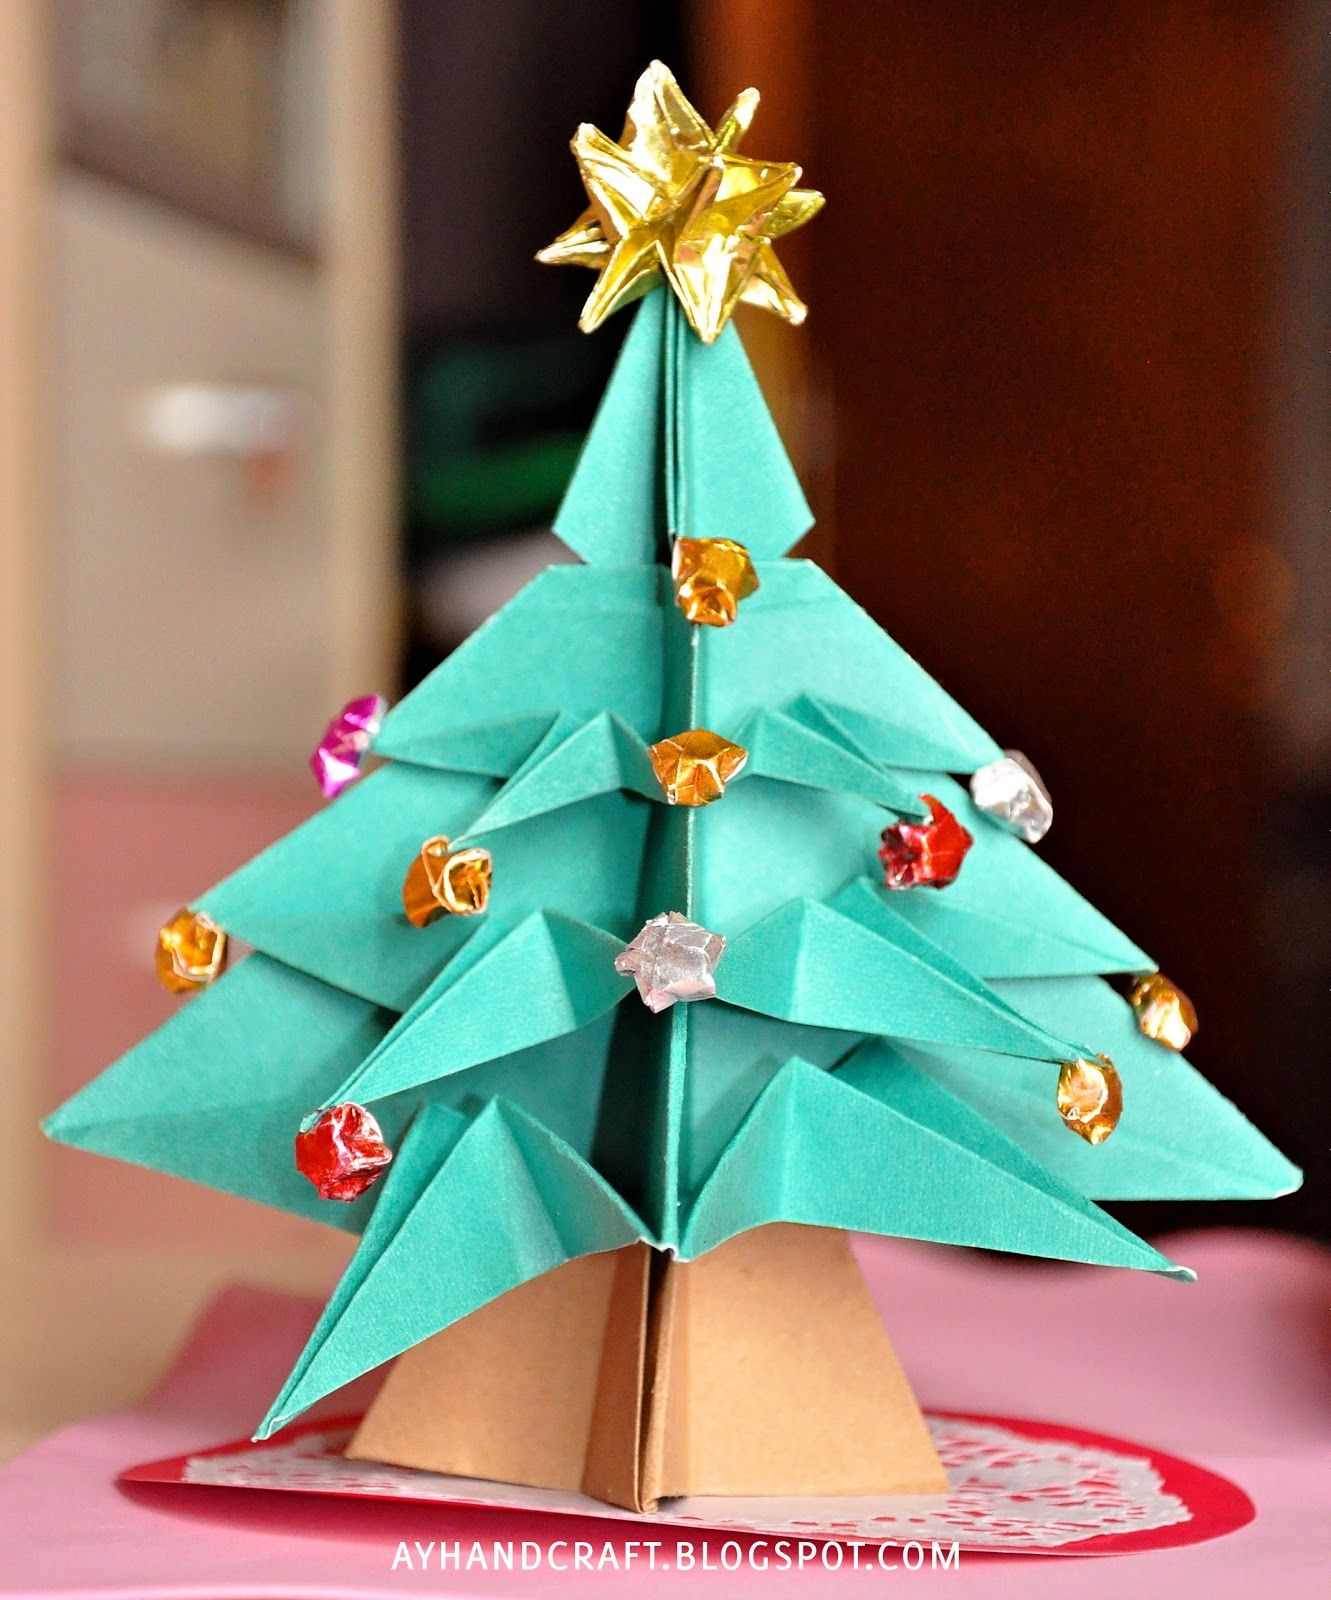 Made with love by Agus Y.: Last minute Christmas decoration! //Girl Child's new origami project as of right now.